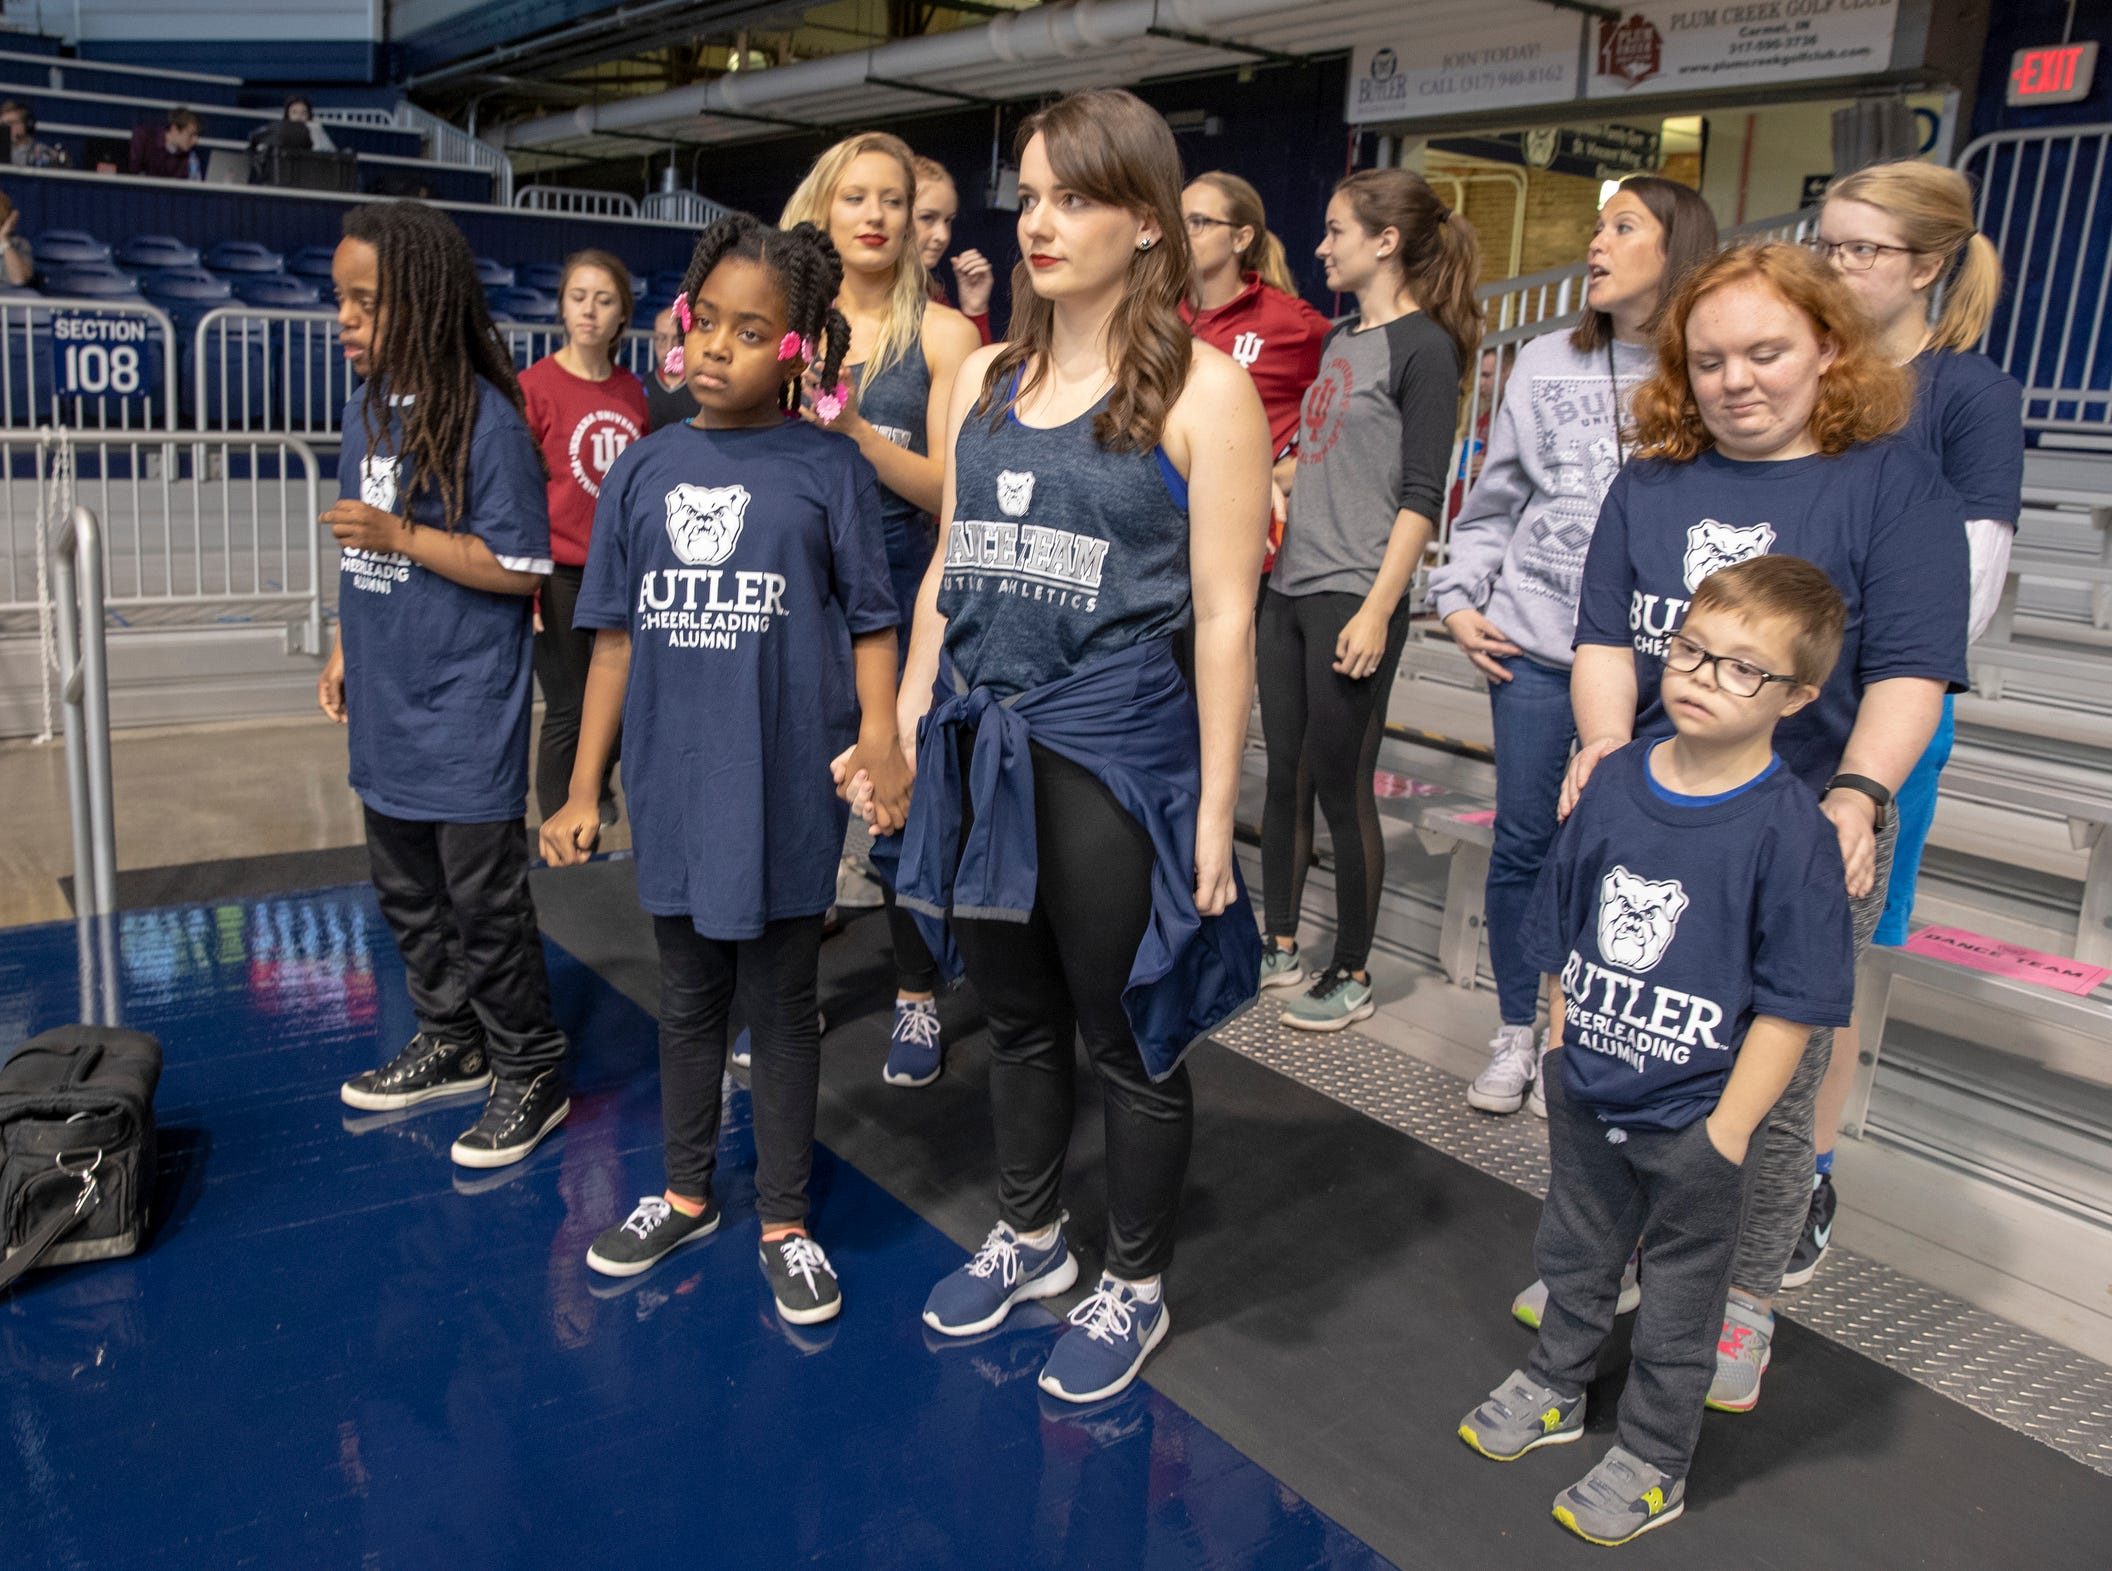 Students wait to take the floor for a special halftime performance during the Butler women's basketball game at Hinkle Fieldhouse, Indianapolis, Sunday, Dec. 2, 2018. Butler cheer and dance groups paired up with physical therapy students from Indiana University to teach young people with special needs a routine in preparation for a special performance during the afternoon's halftime show.